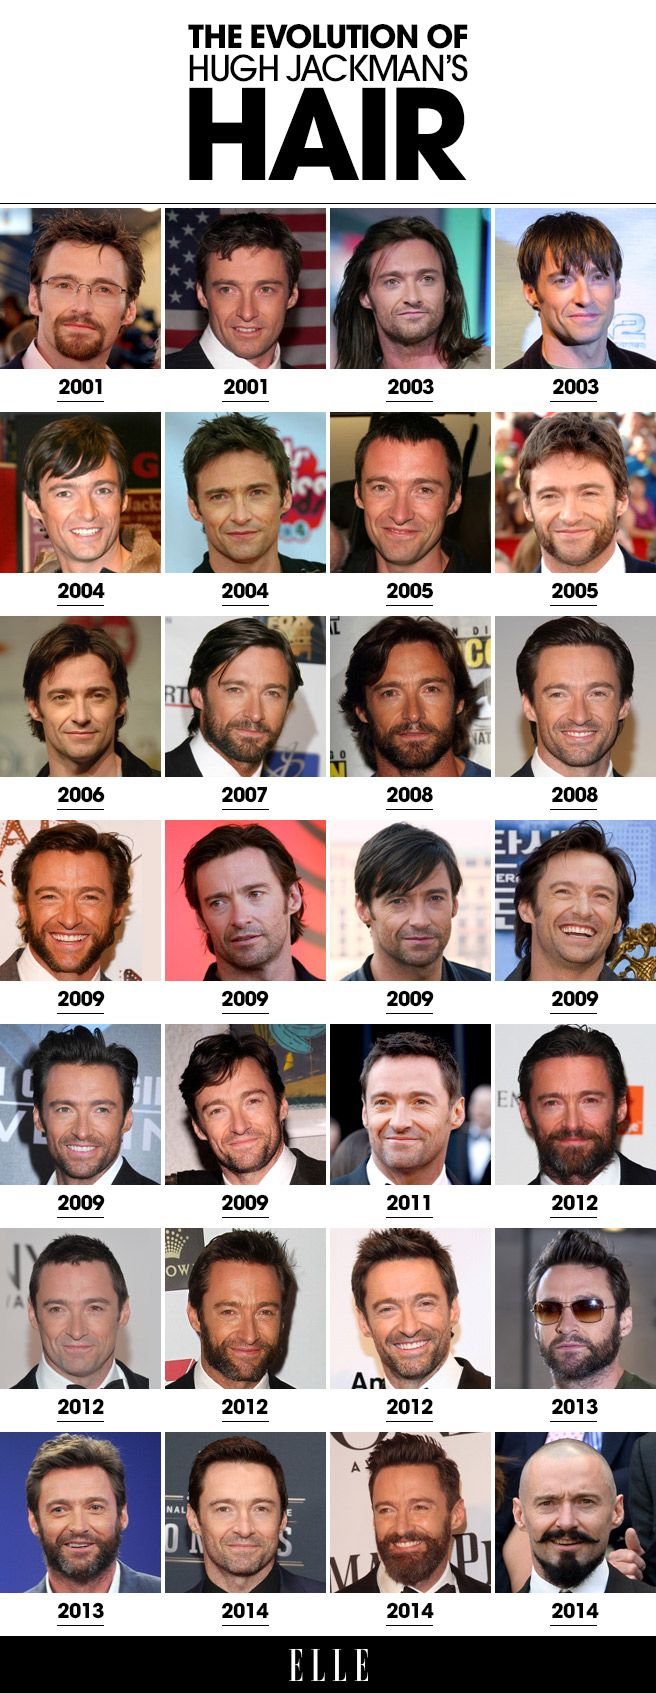 Hugh Jackmans Hair Evolution Best Hairstyles For Men - Beckham's hairstyle history